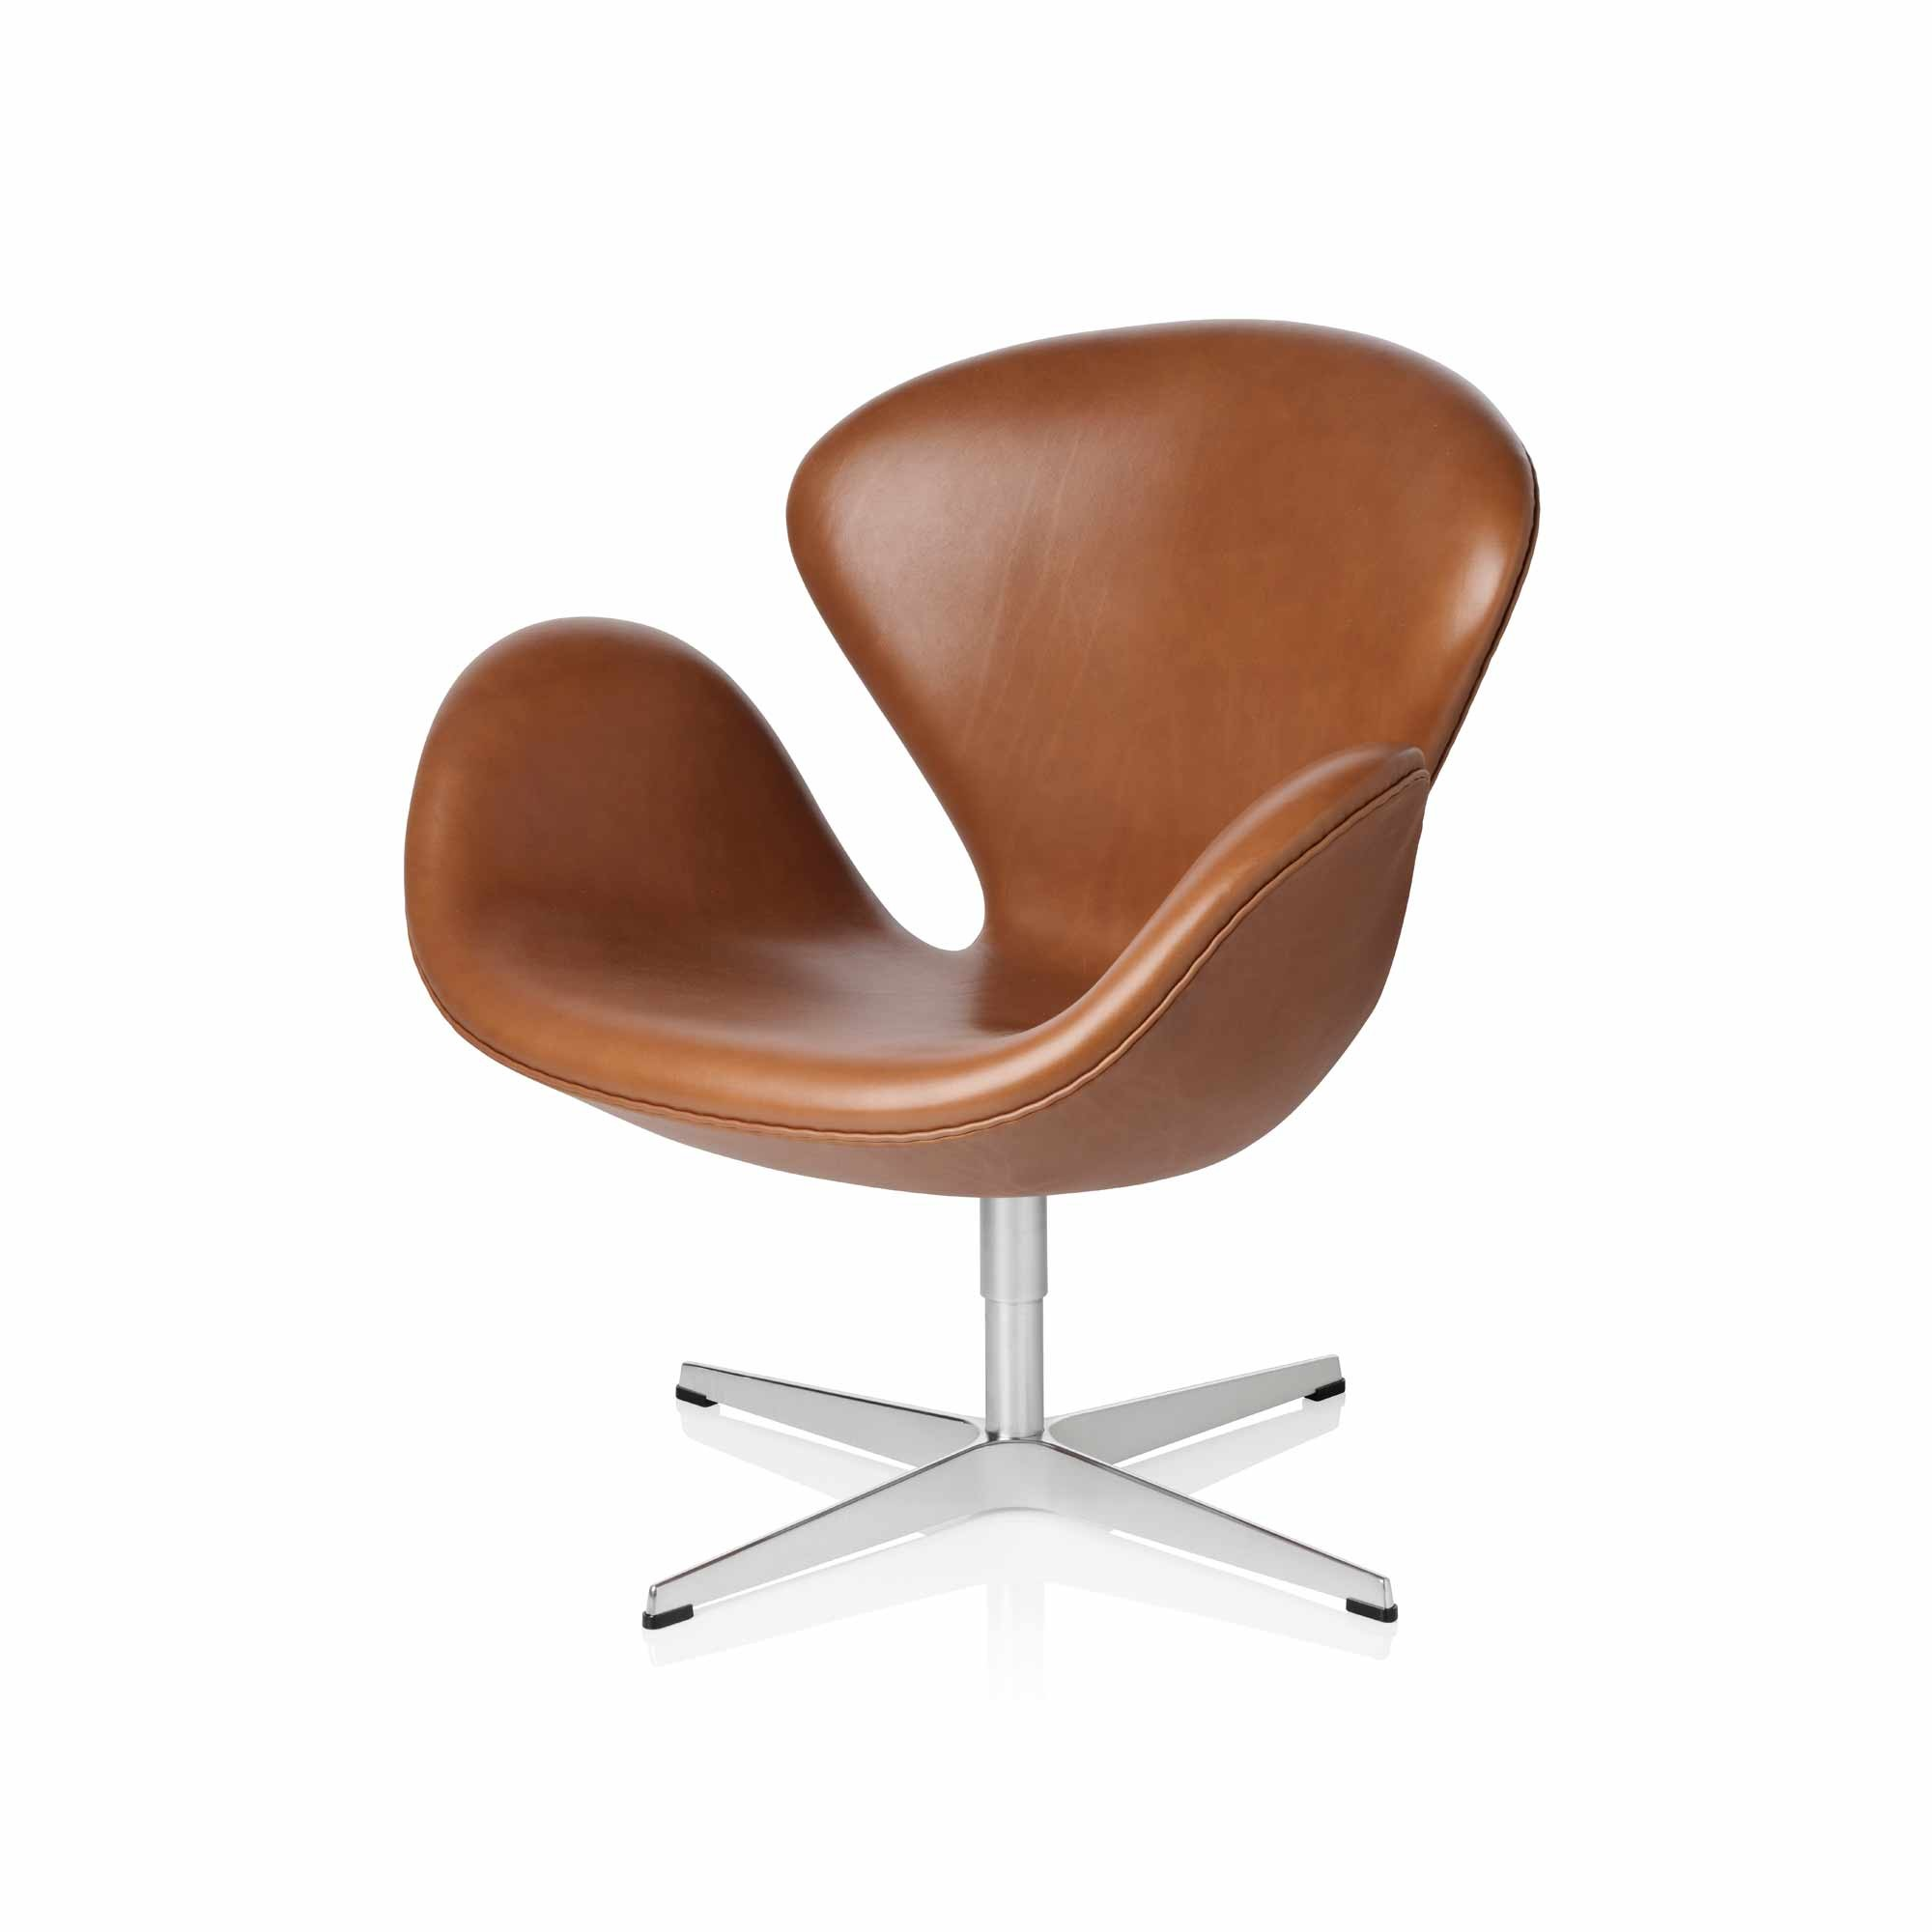 egg furniture danoise arne scandinavian boutique fritz hansen chair jacobsen design en by la